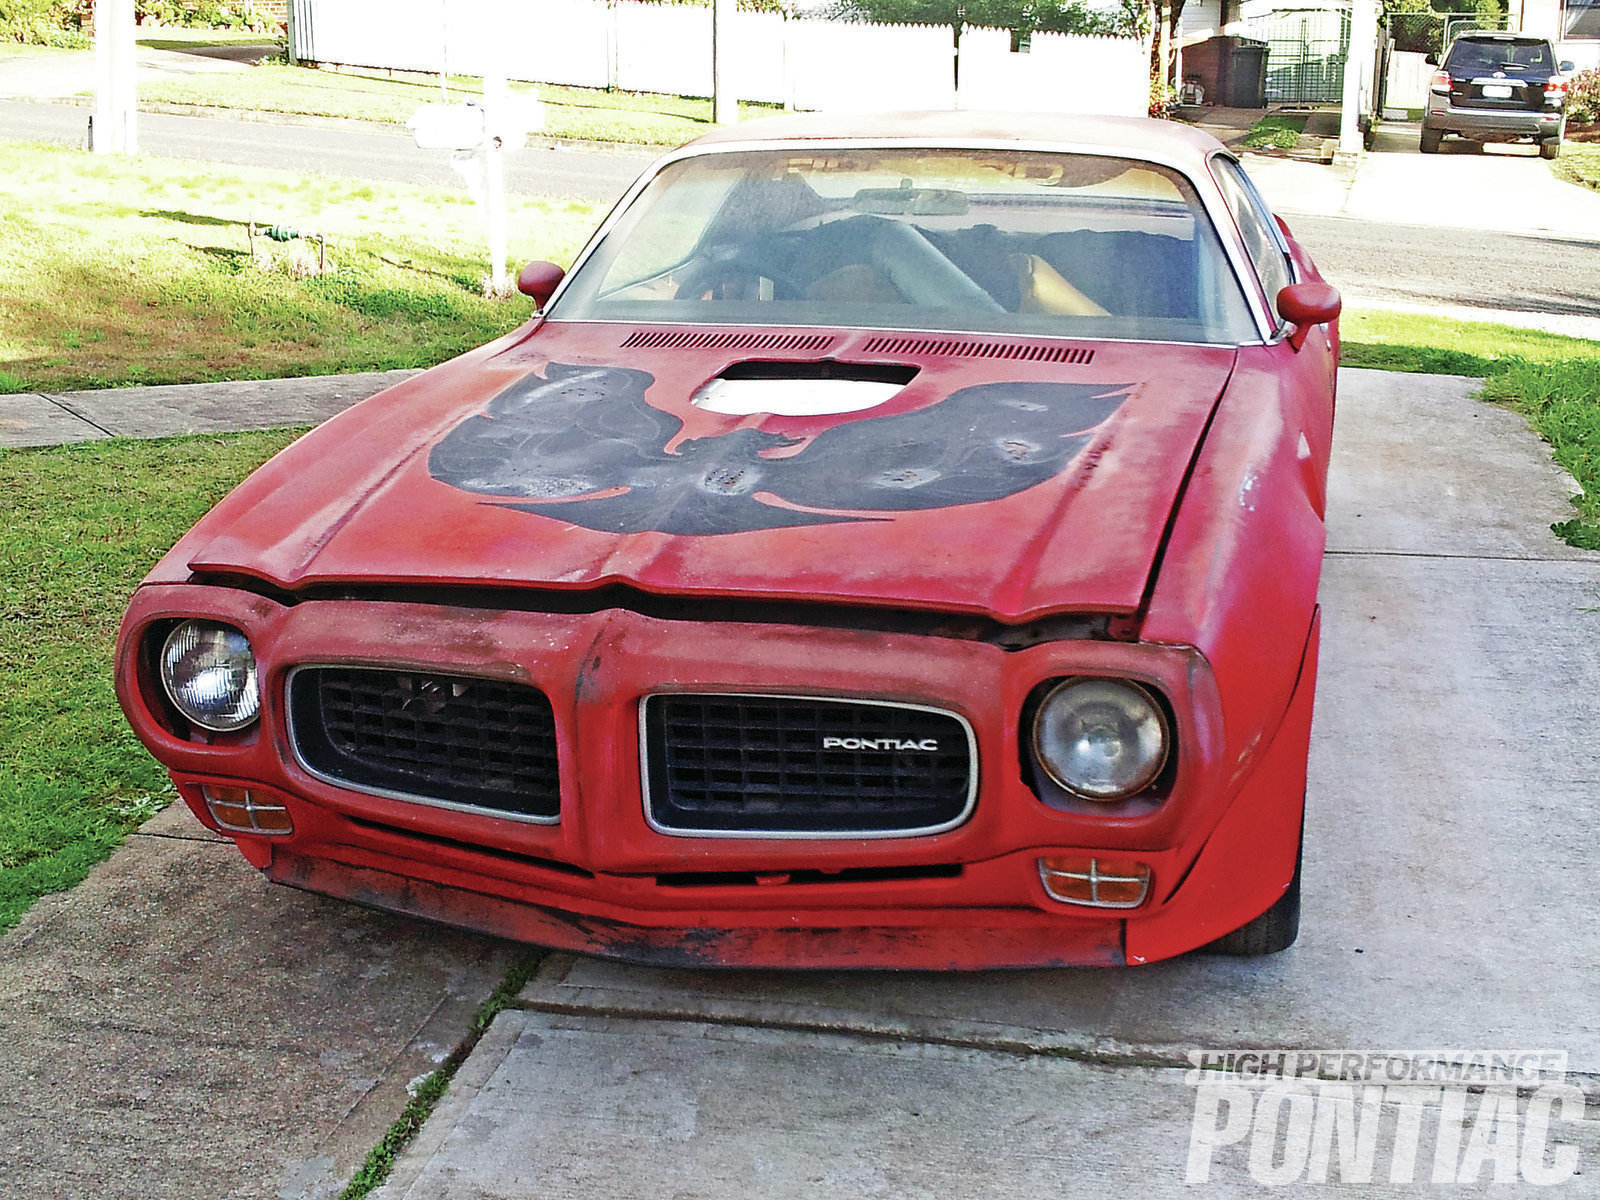 In need of a restoration, it was rather complete and seemed like the perfect project for Michael. From its host of options, and the timeframe in which it was built and sold, all indications suggest it was the Super-Duty Trans Am used in several vintage road tests.